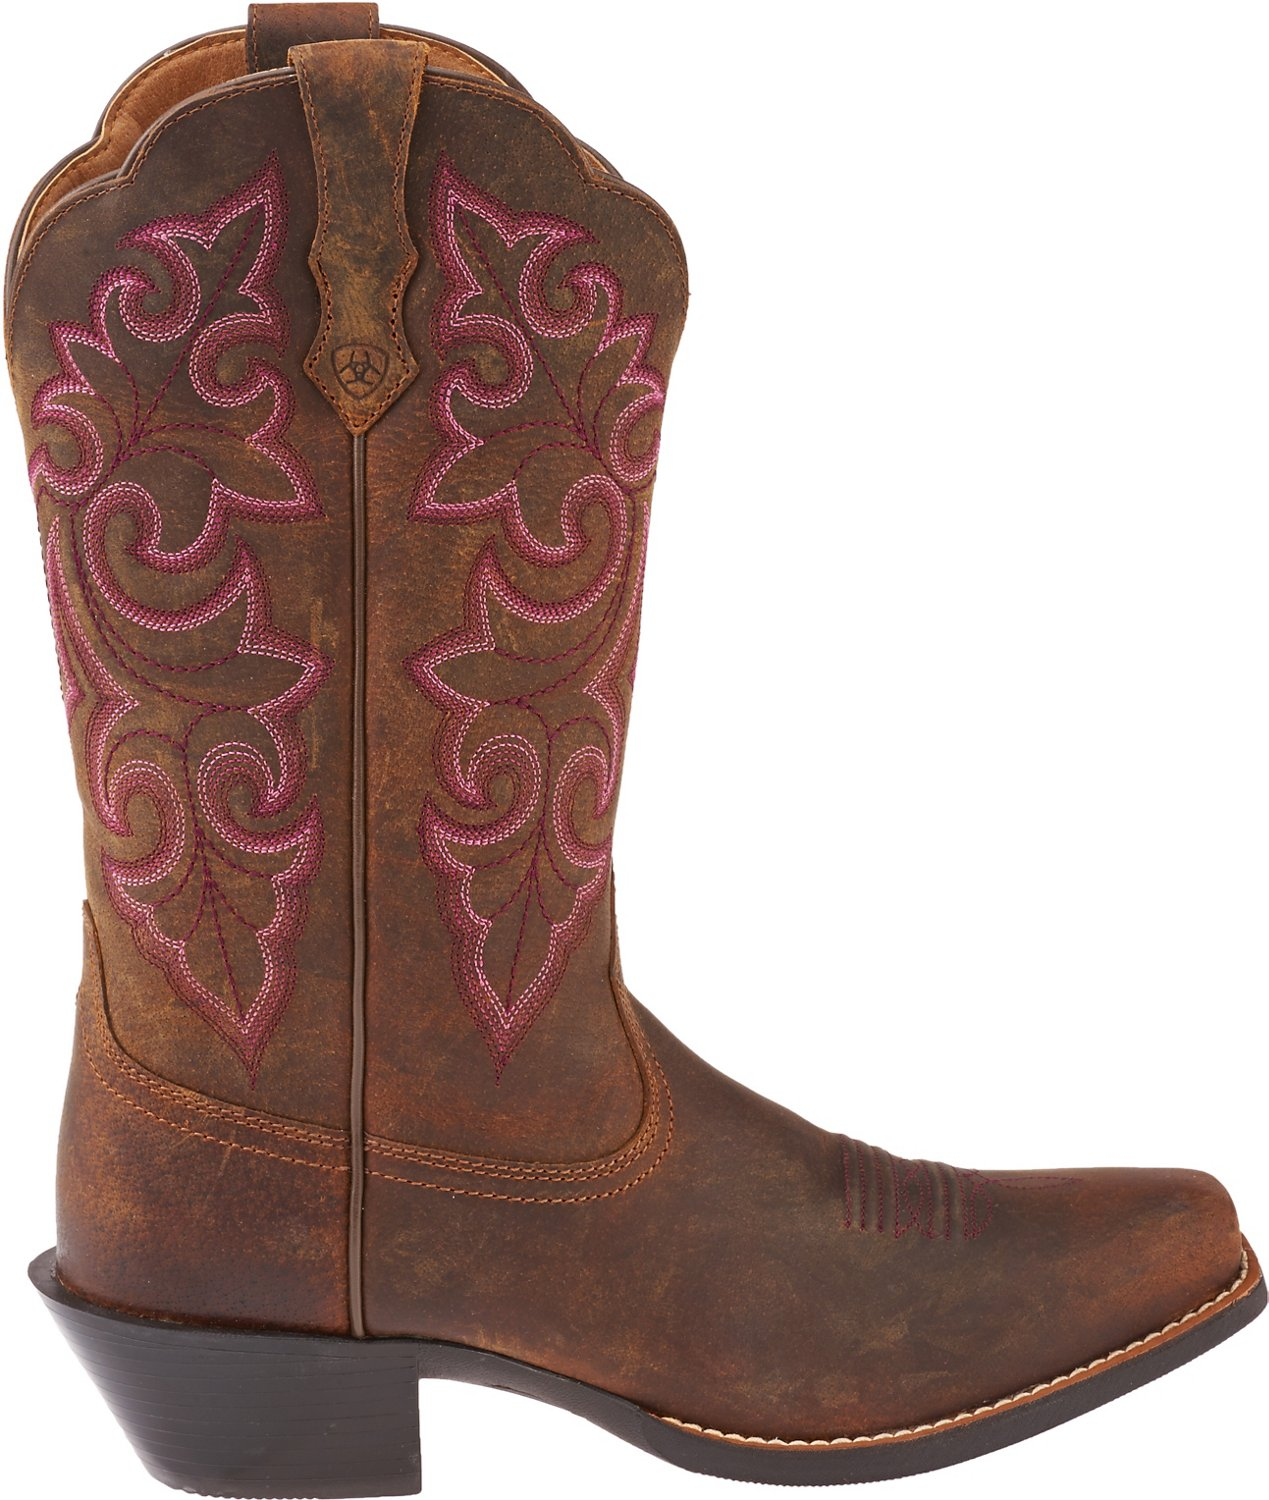 4a52a299630 Ariat Women's Round Up Square-Toe Cowboy Boots